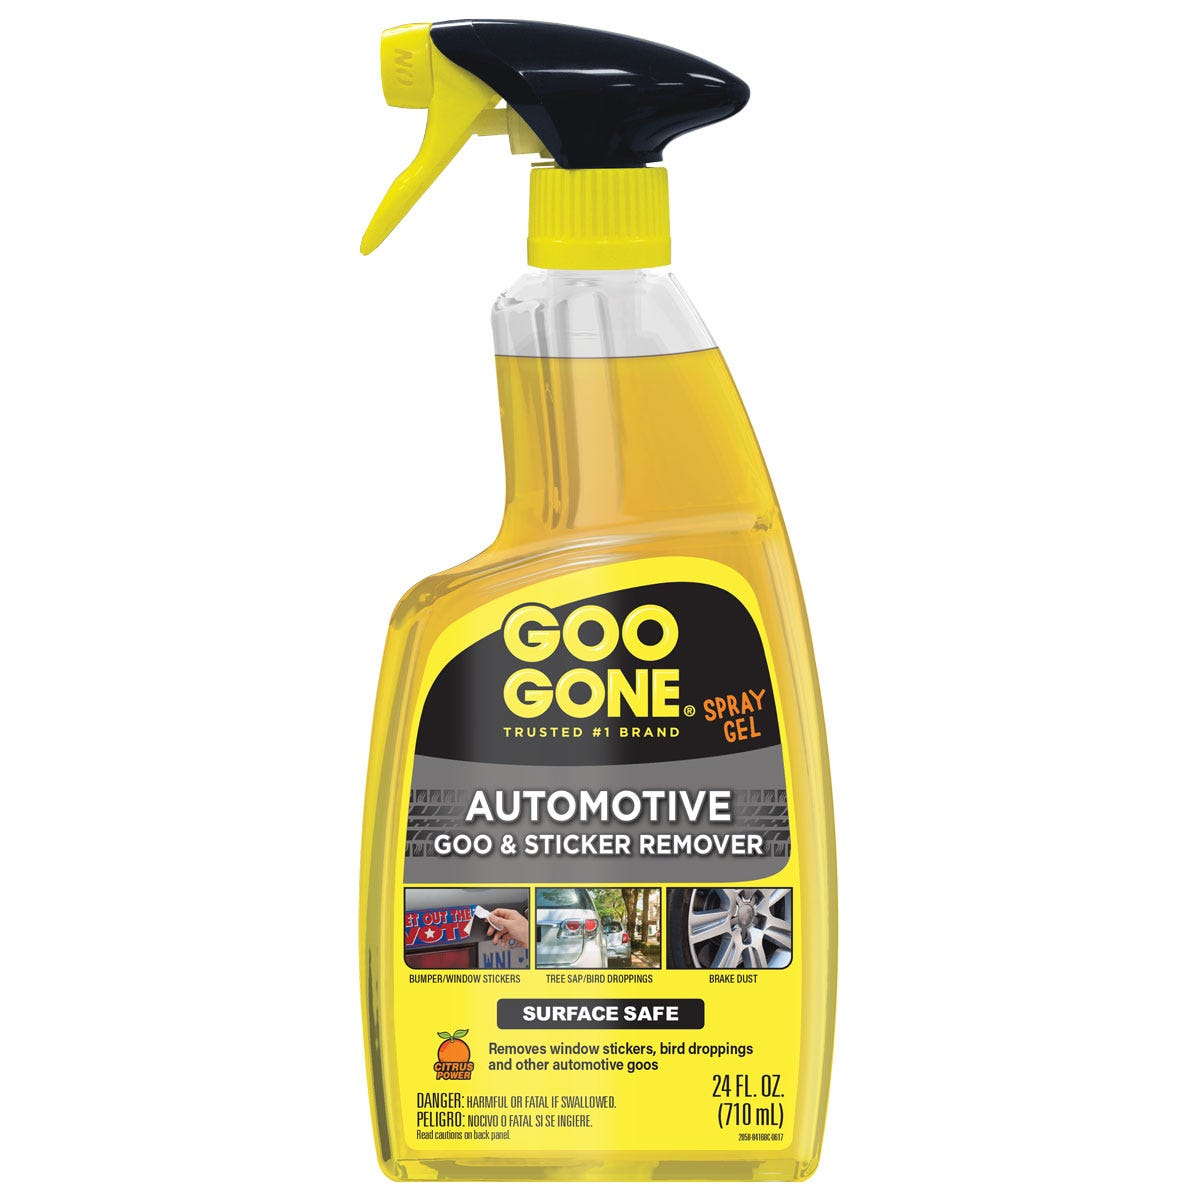 Automotive Goo & Sticker Remover